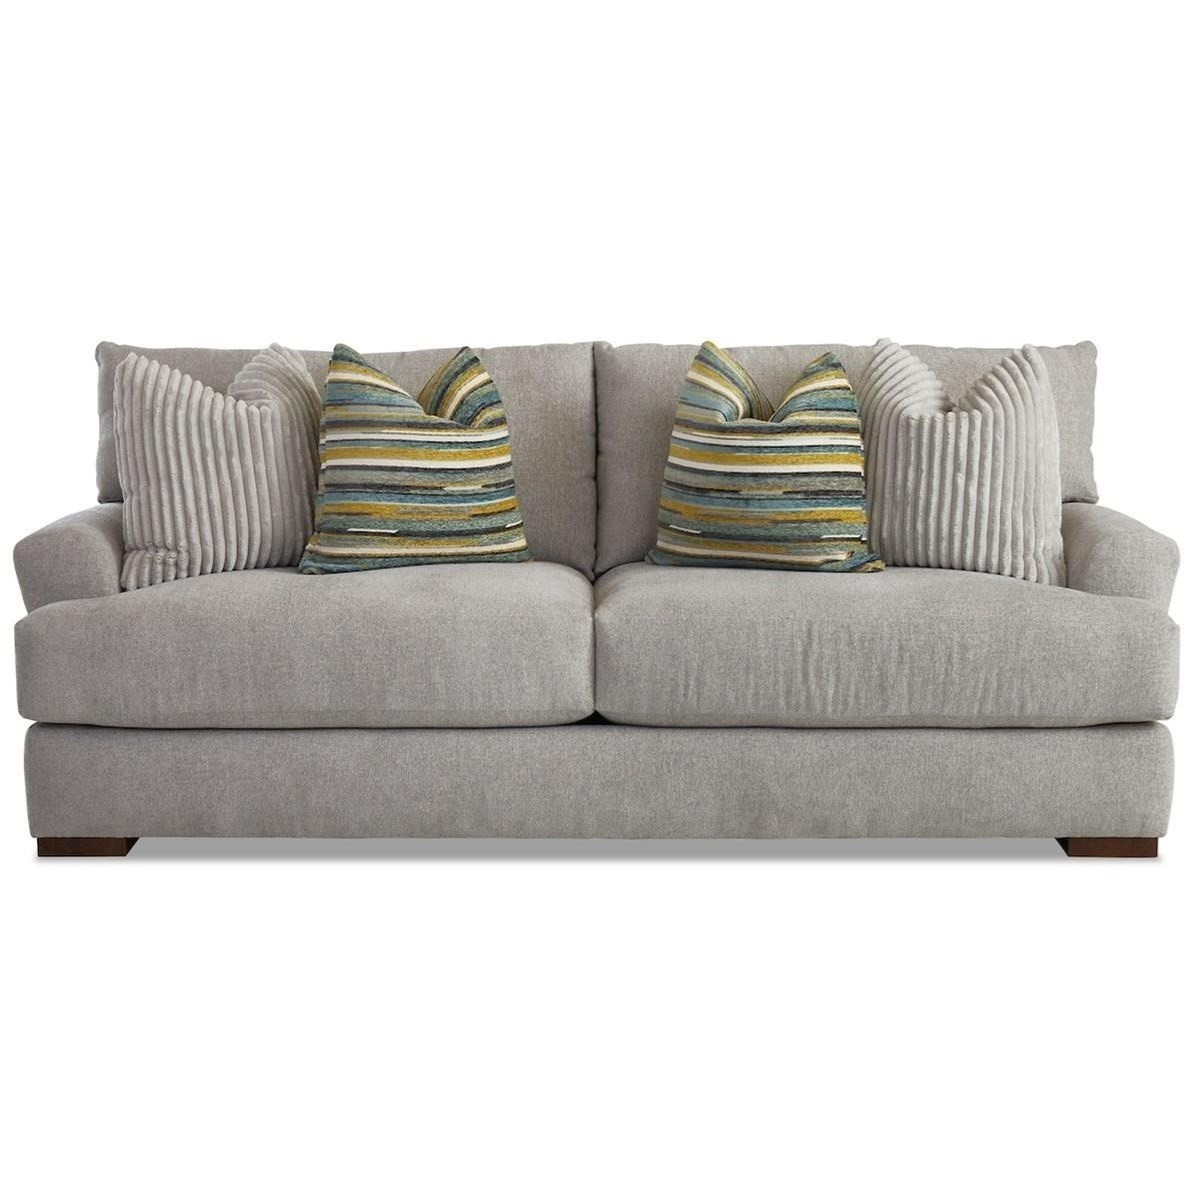 Gunner Sofa by Klaussner at Northeast Factory Direct